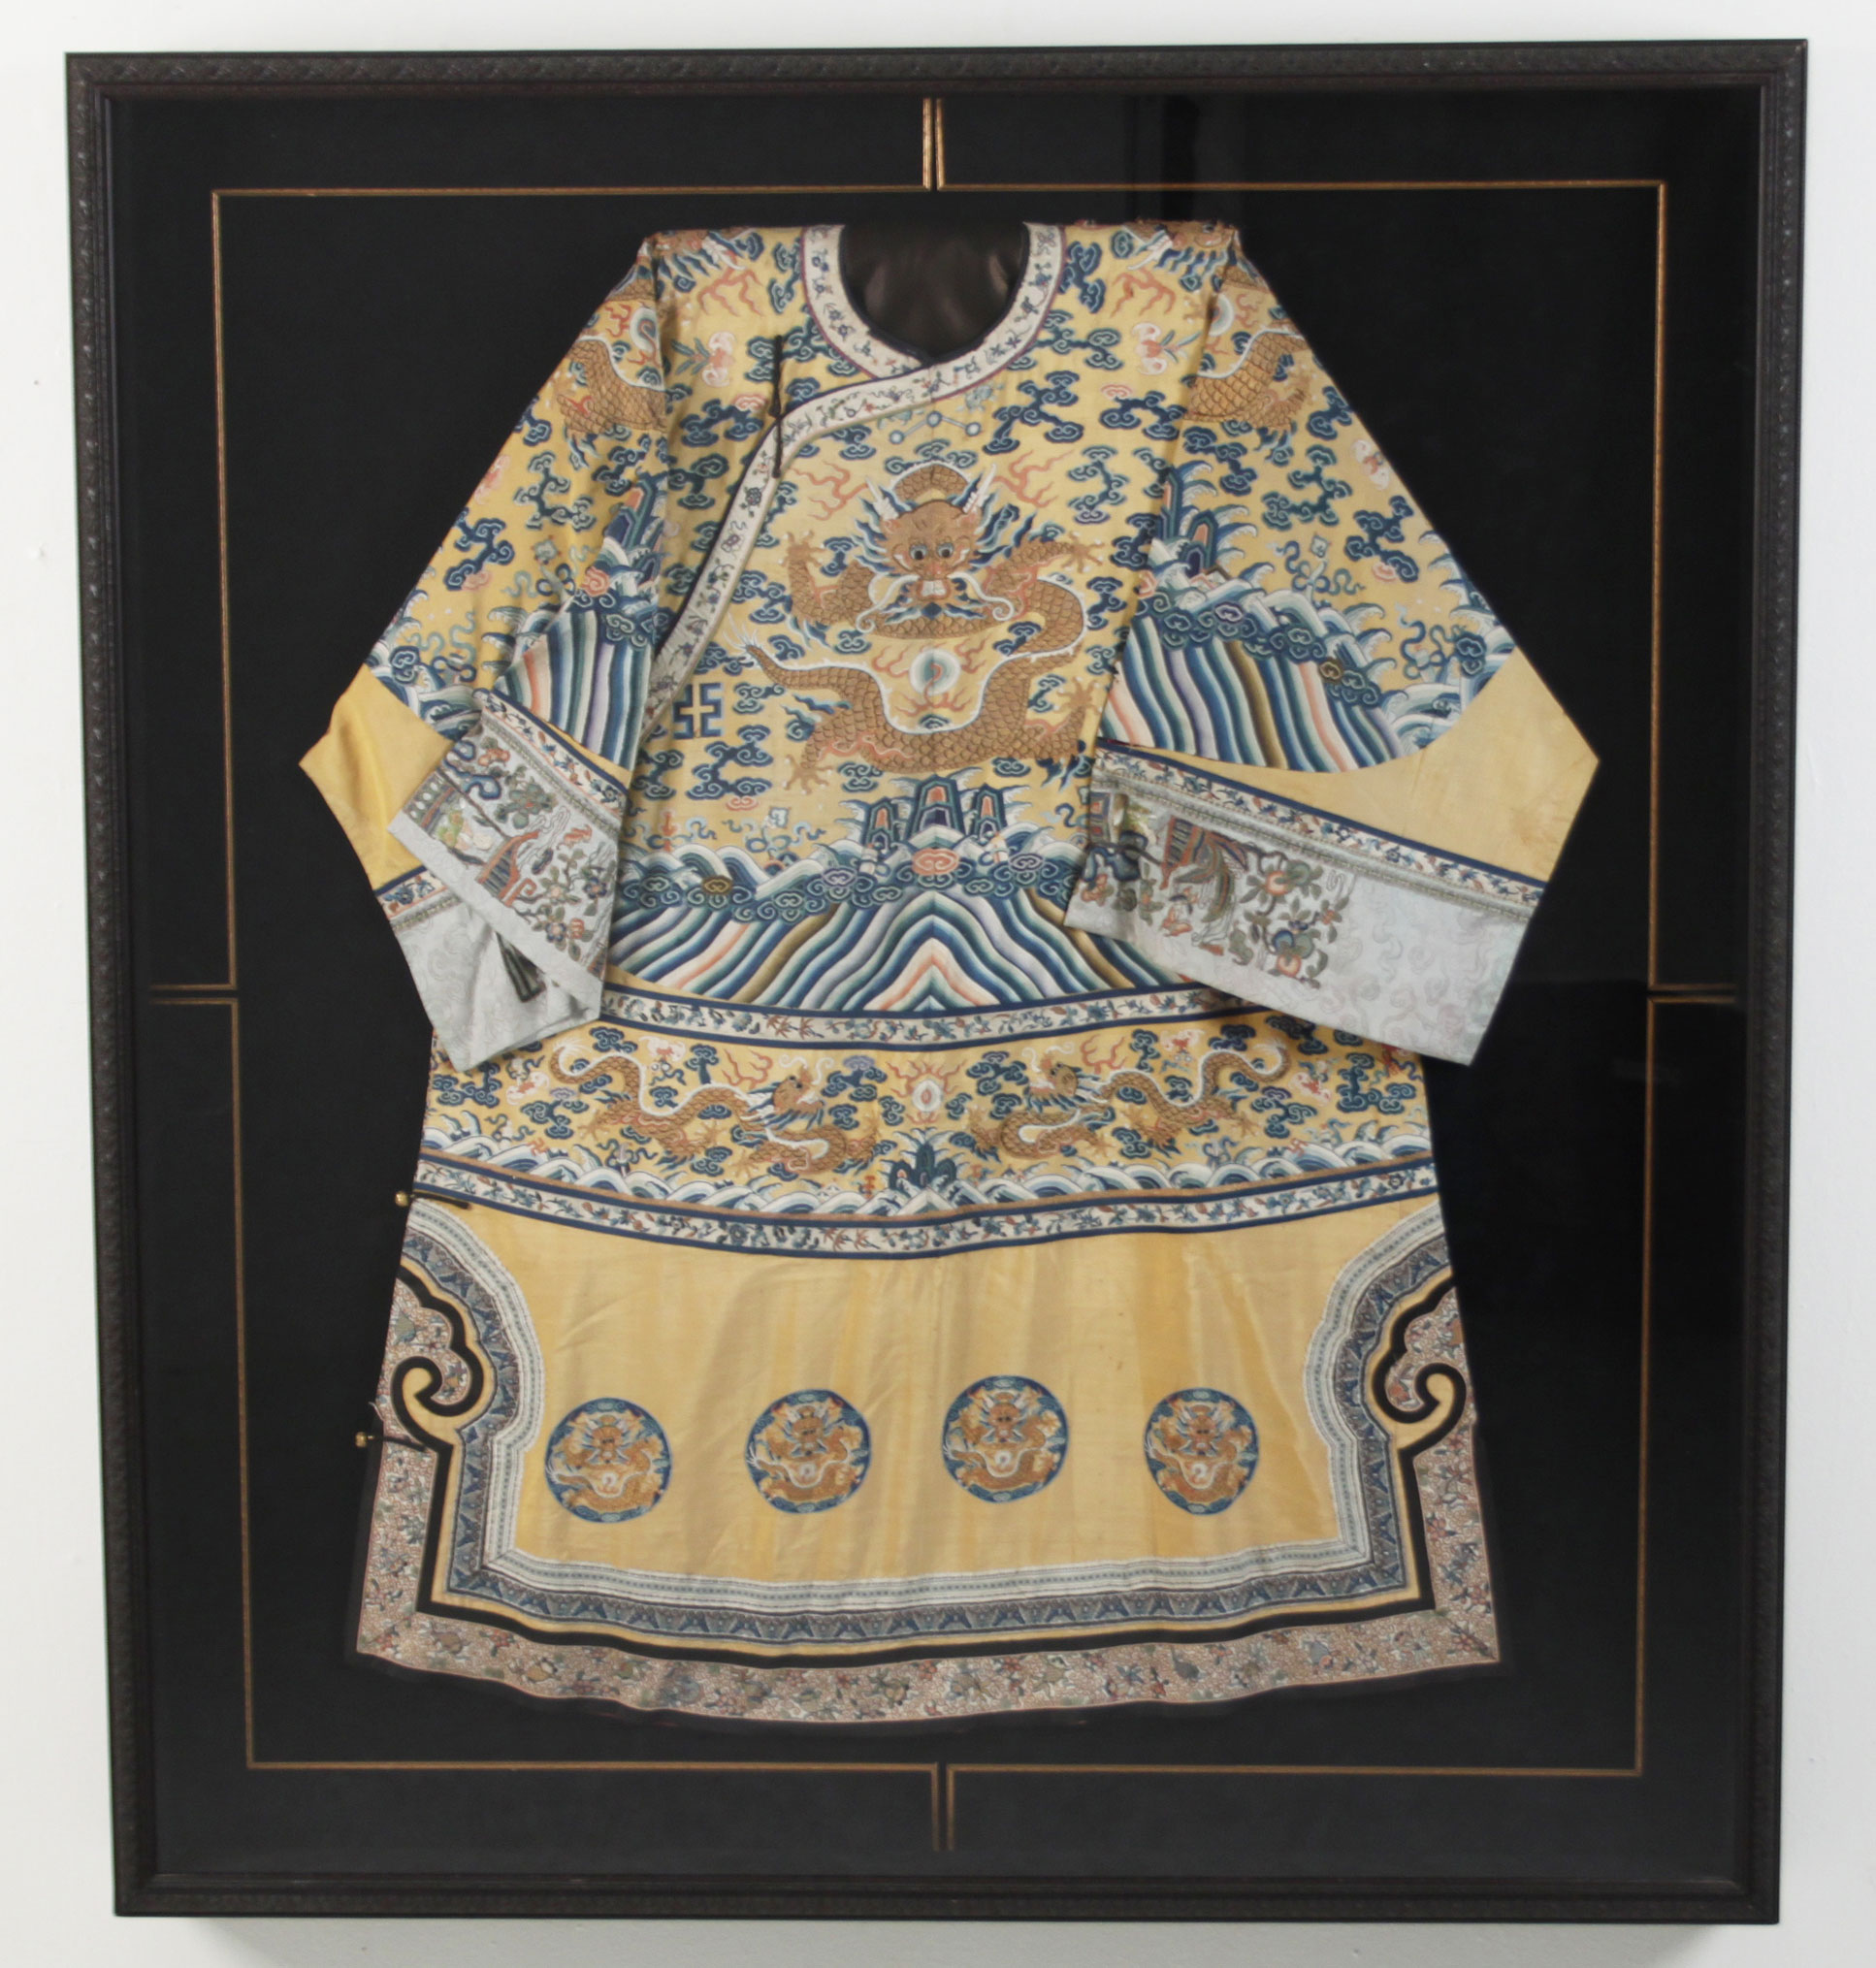 Chinese Qing Dynasty Court Robe